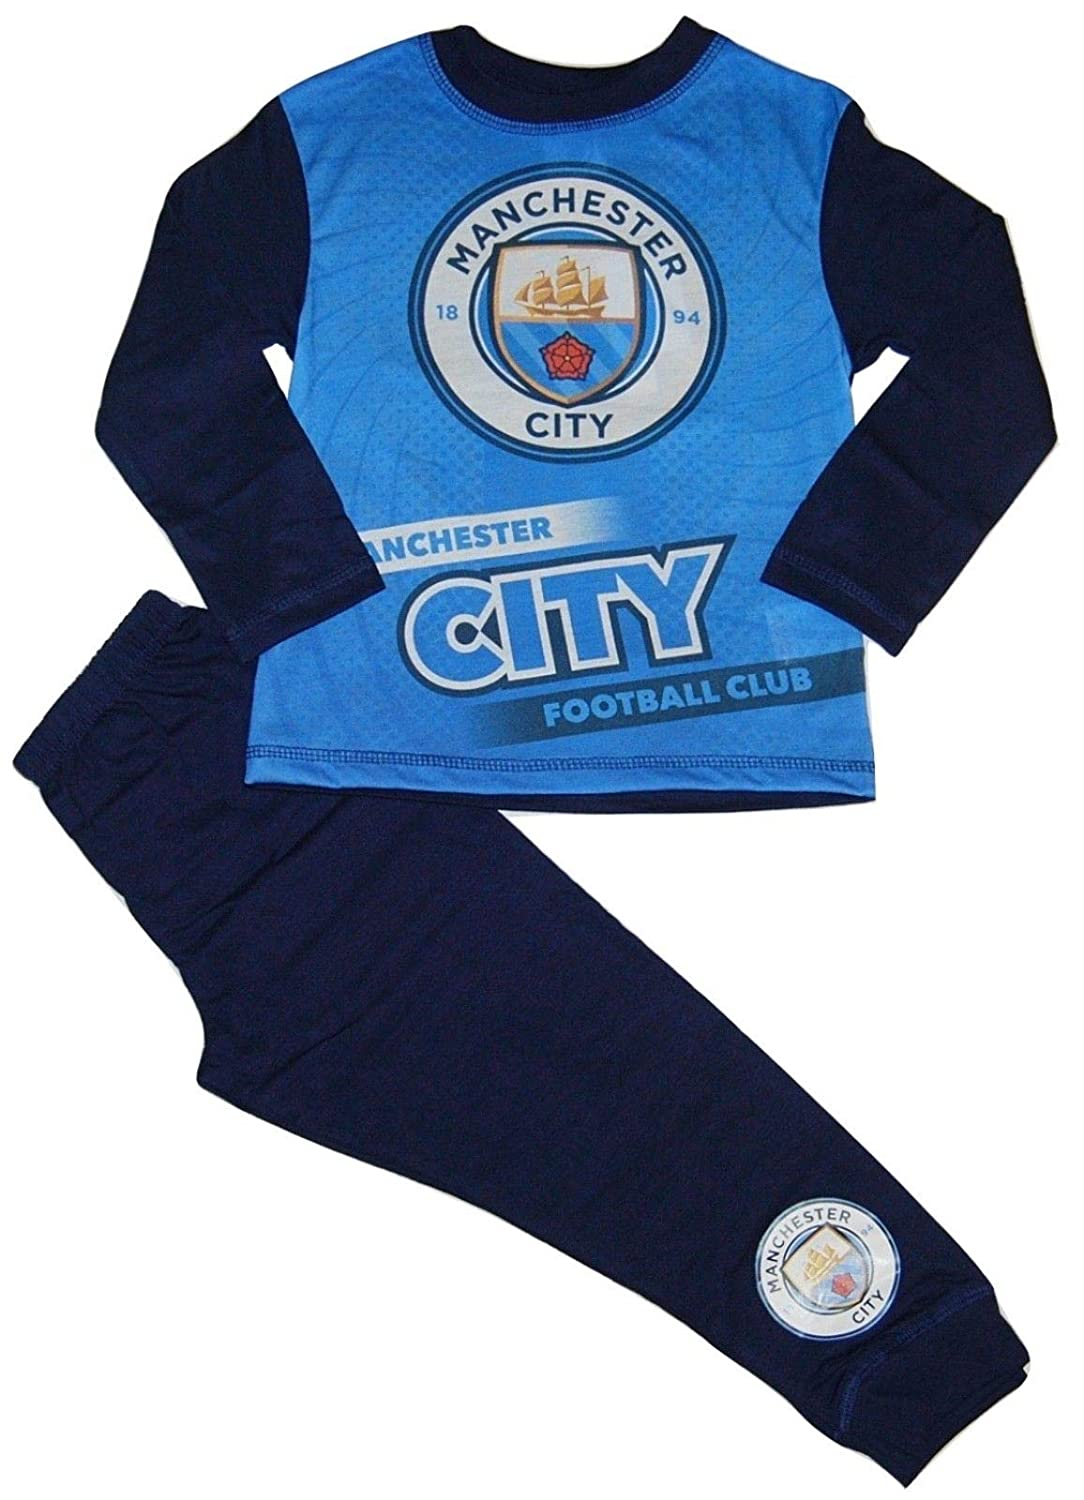 12-18 months up to 3-4 YEARS NEW BOYS MANCHESTER CITY F.C TODDLER PYJAMAS AGES